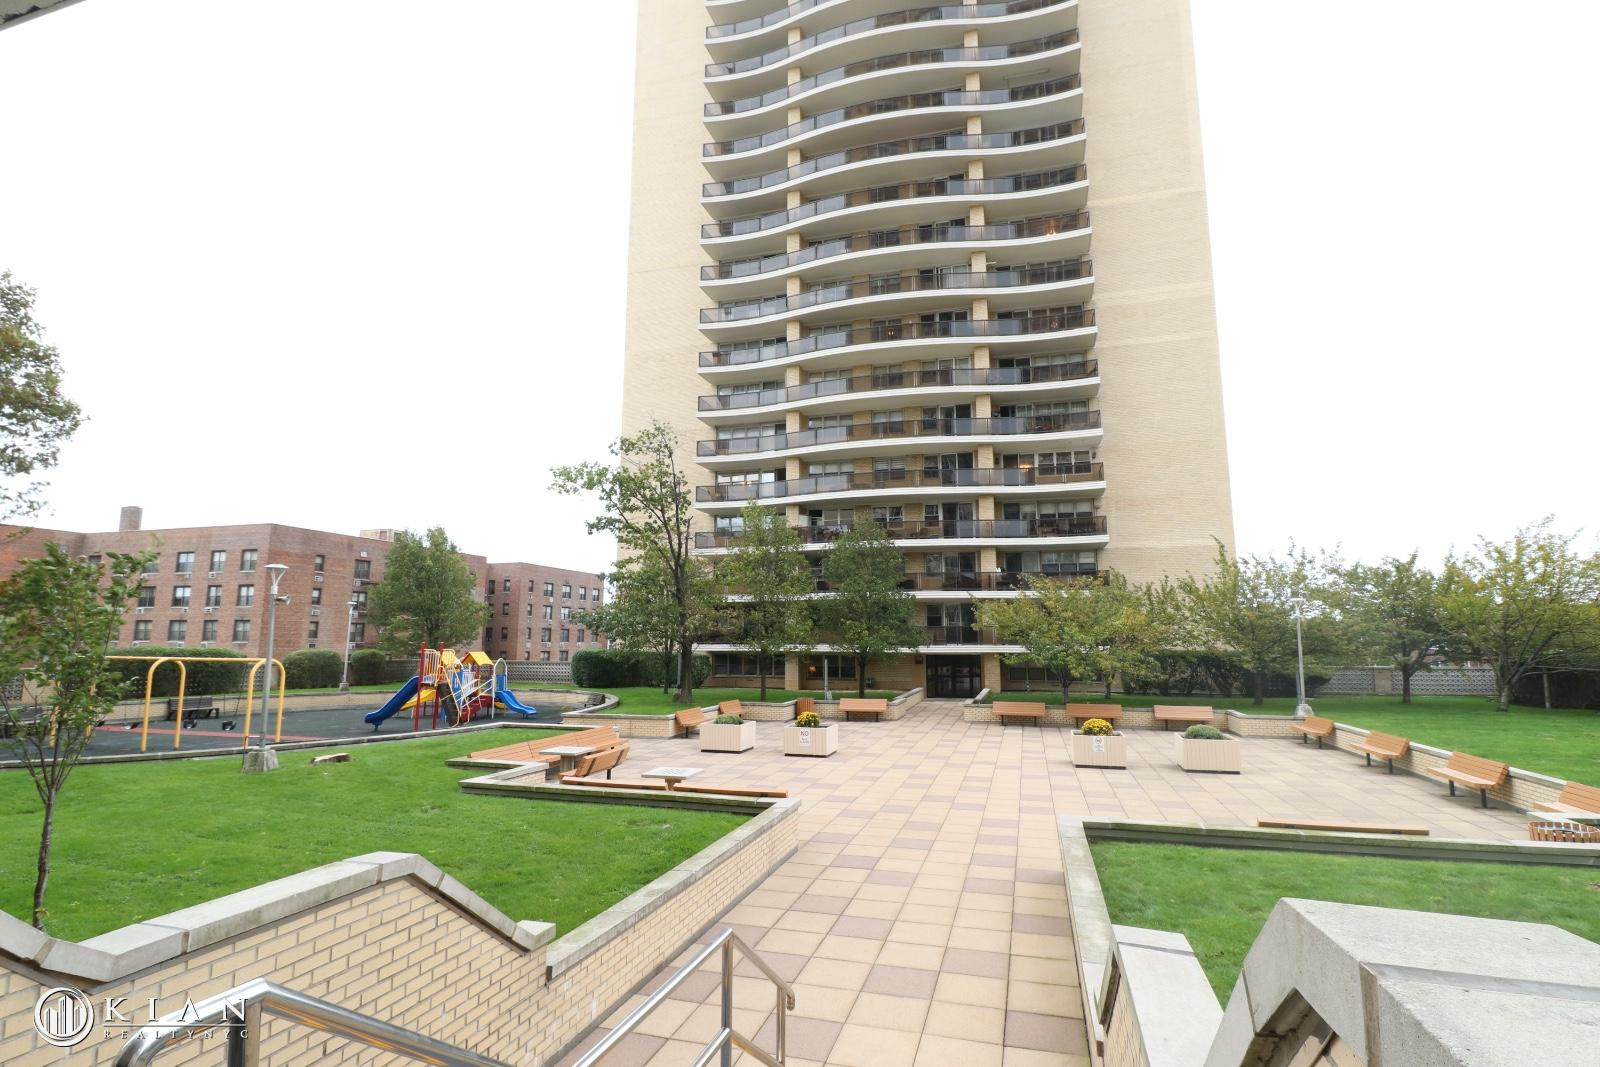 Courtyard with playground